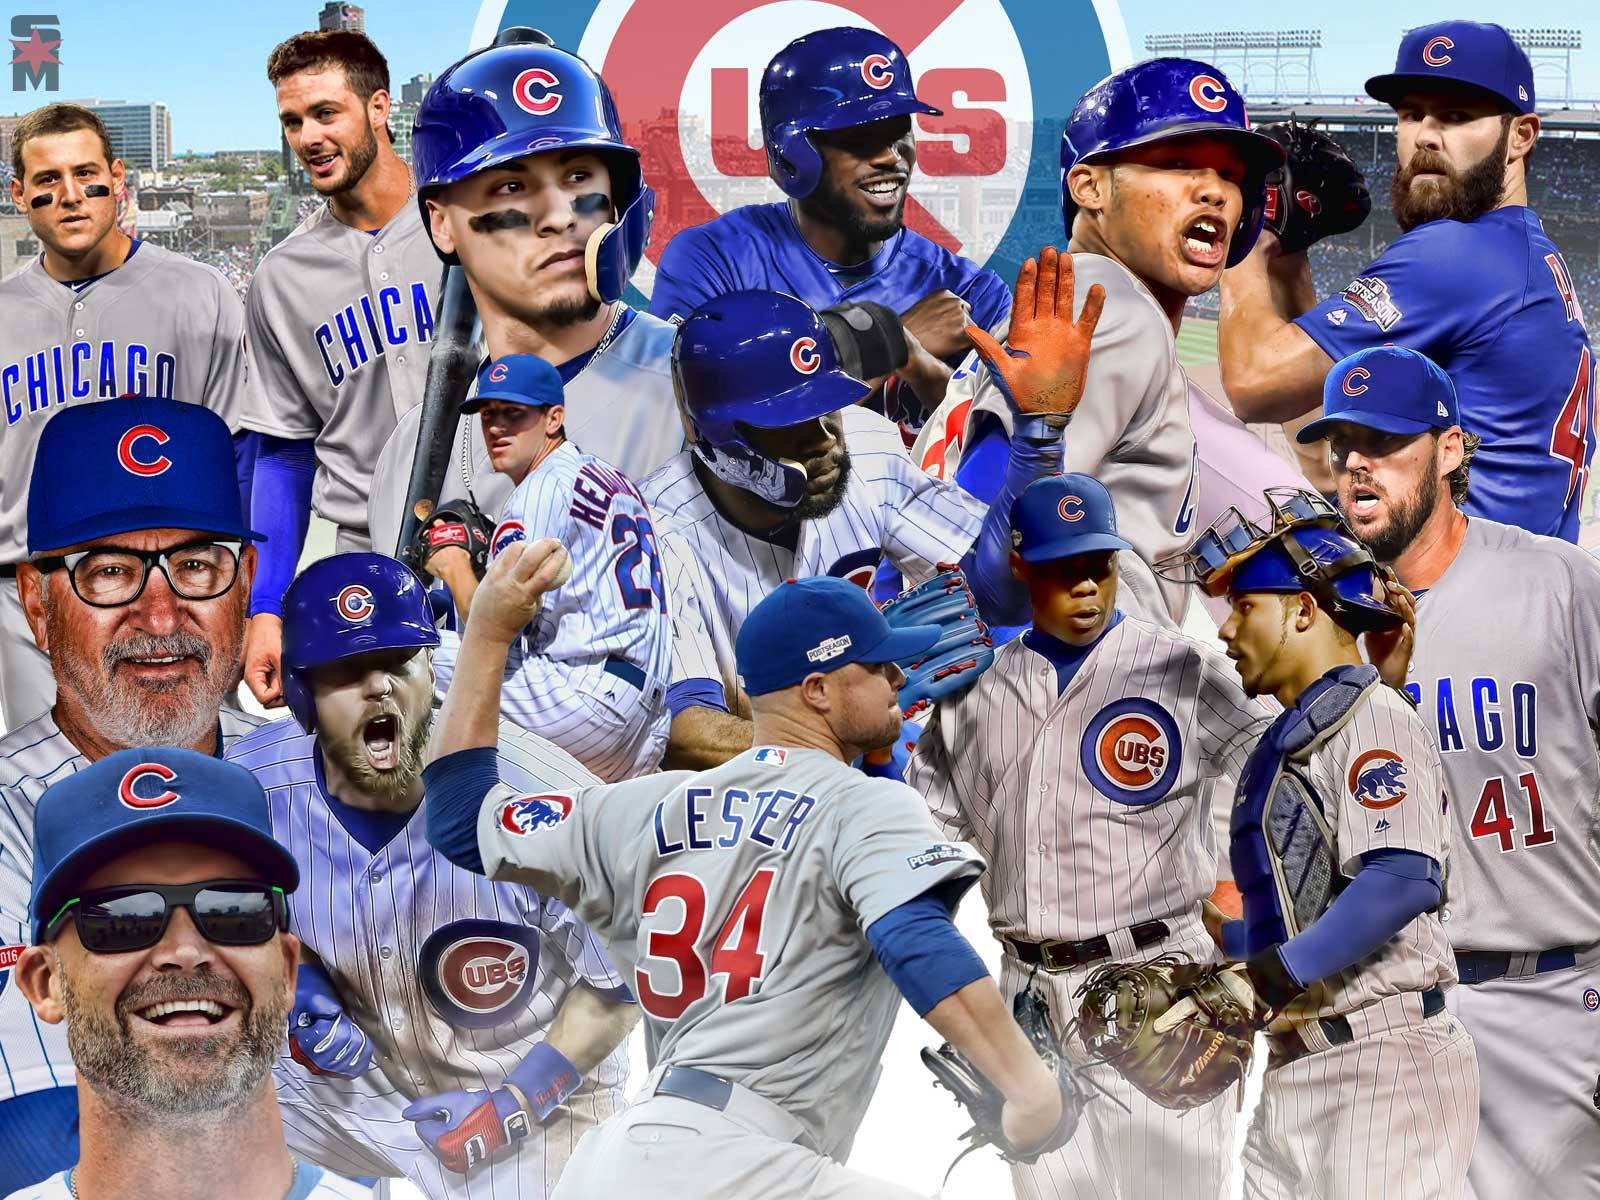 Chicago Cubs 2017 Wallpapers - Wallpaper Cave